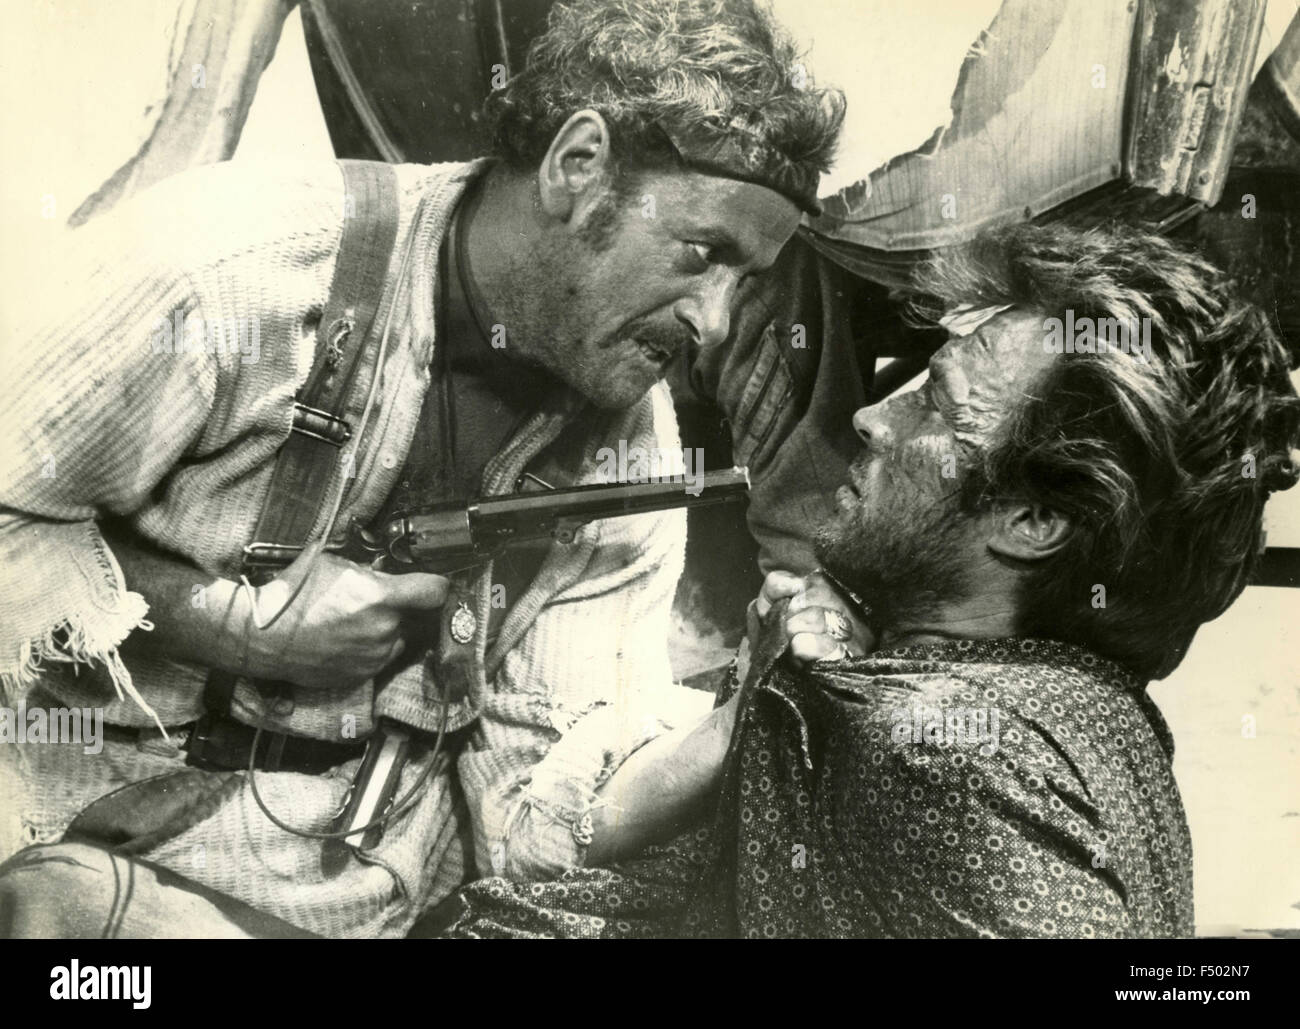 American actors Clint Eastwood and Eli Wallach in a scene from the film 'The Good, the Bad and the Ugly', - Stock Image